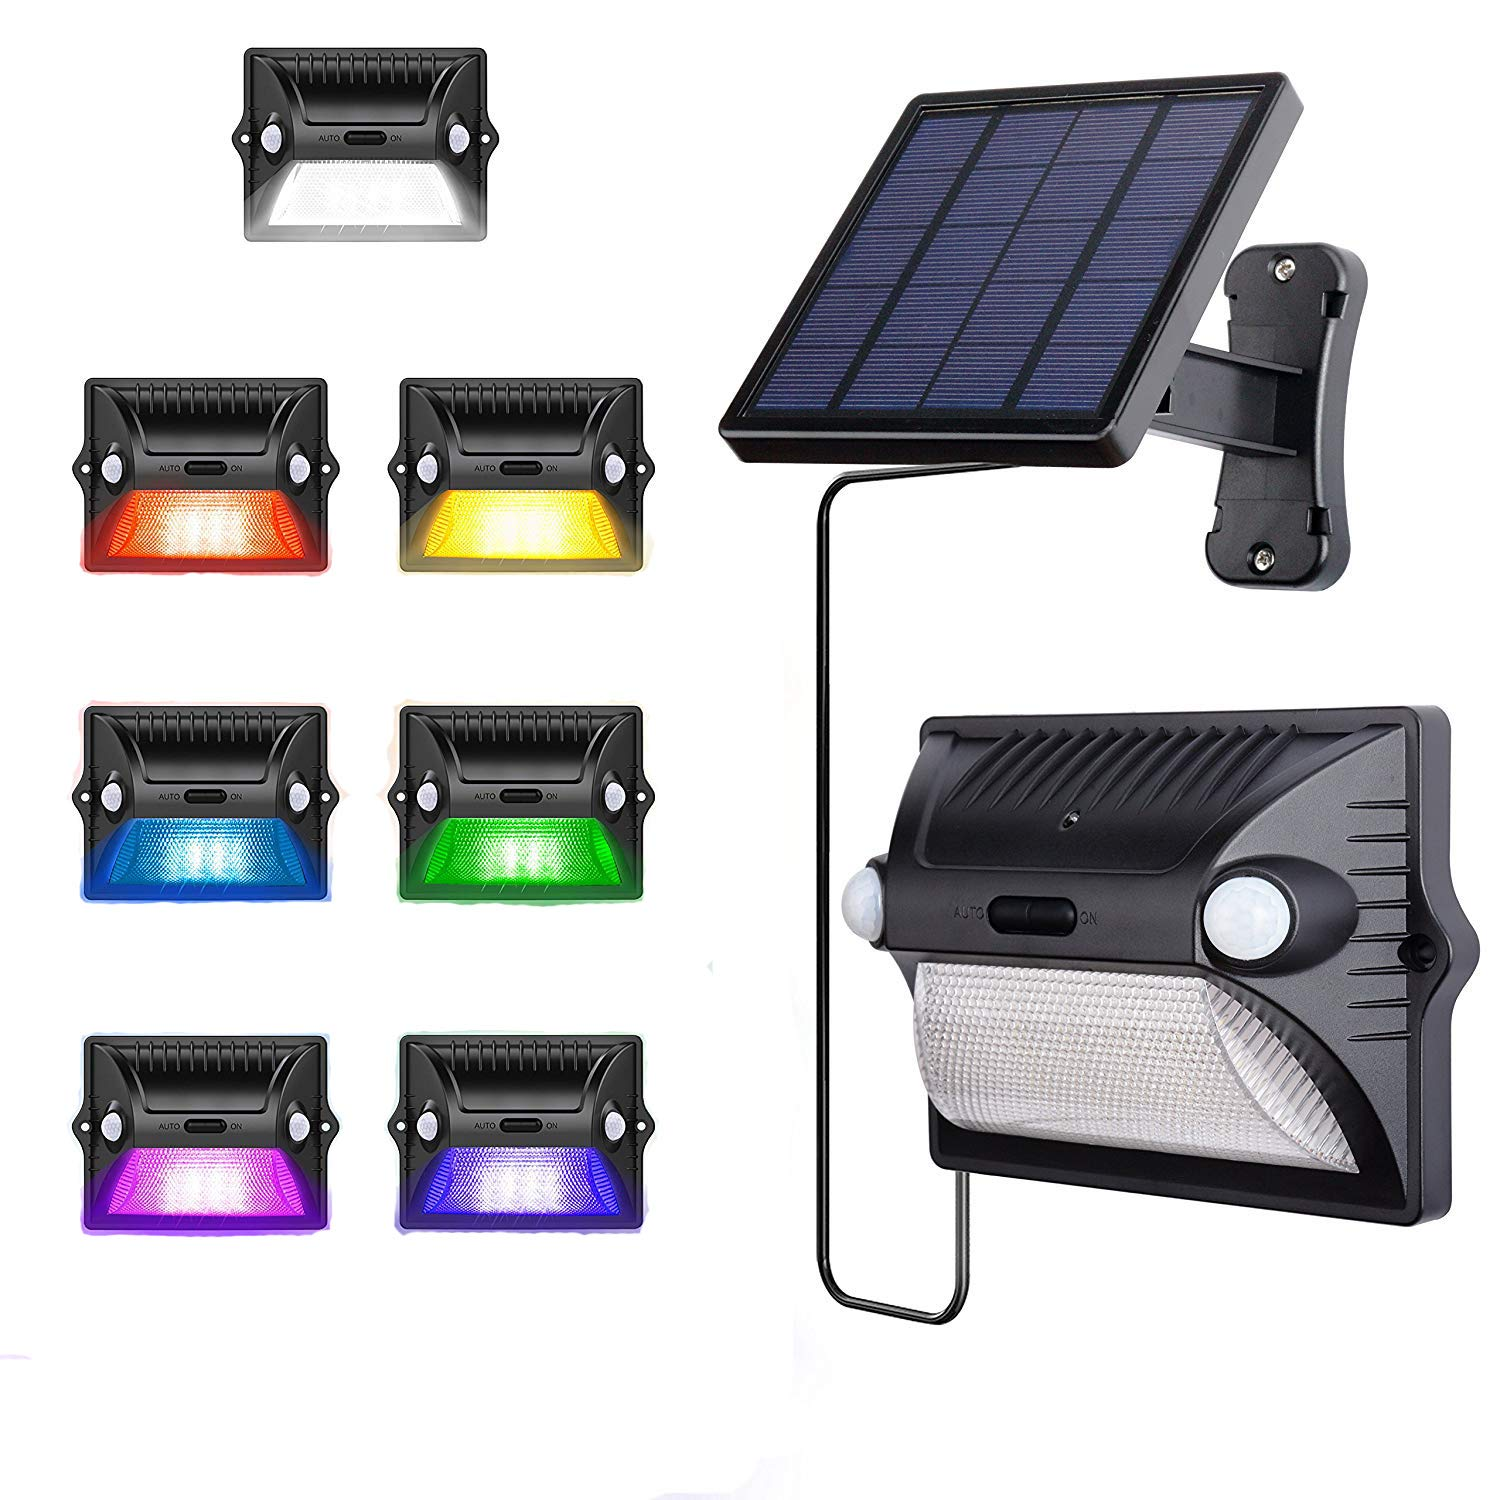 Solar Lights Outdoor,AREOUT Wall Solar Motion Sensor Light Outdoor Waterproof with Separate Panel,12 LED Dual Head Sensor Color Changing Solar Security Lights by AREOUT